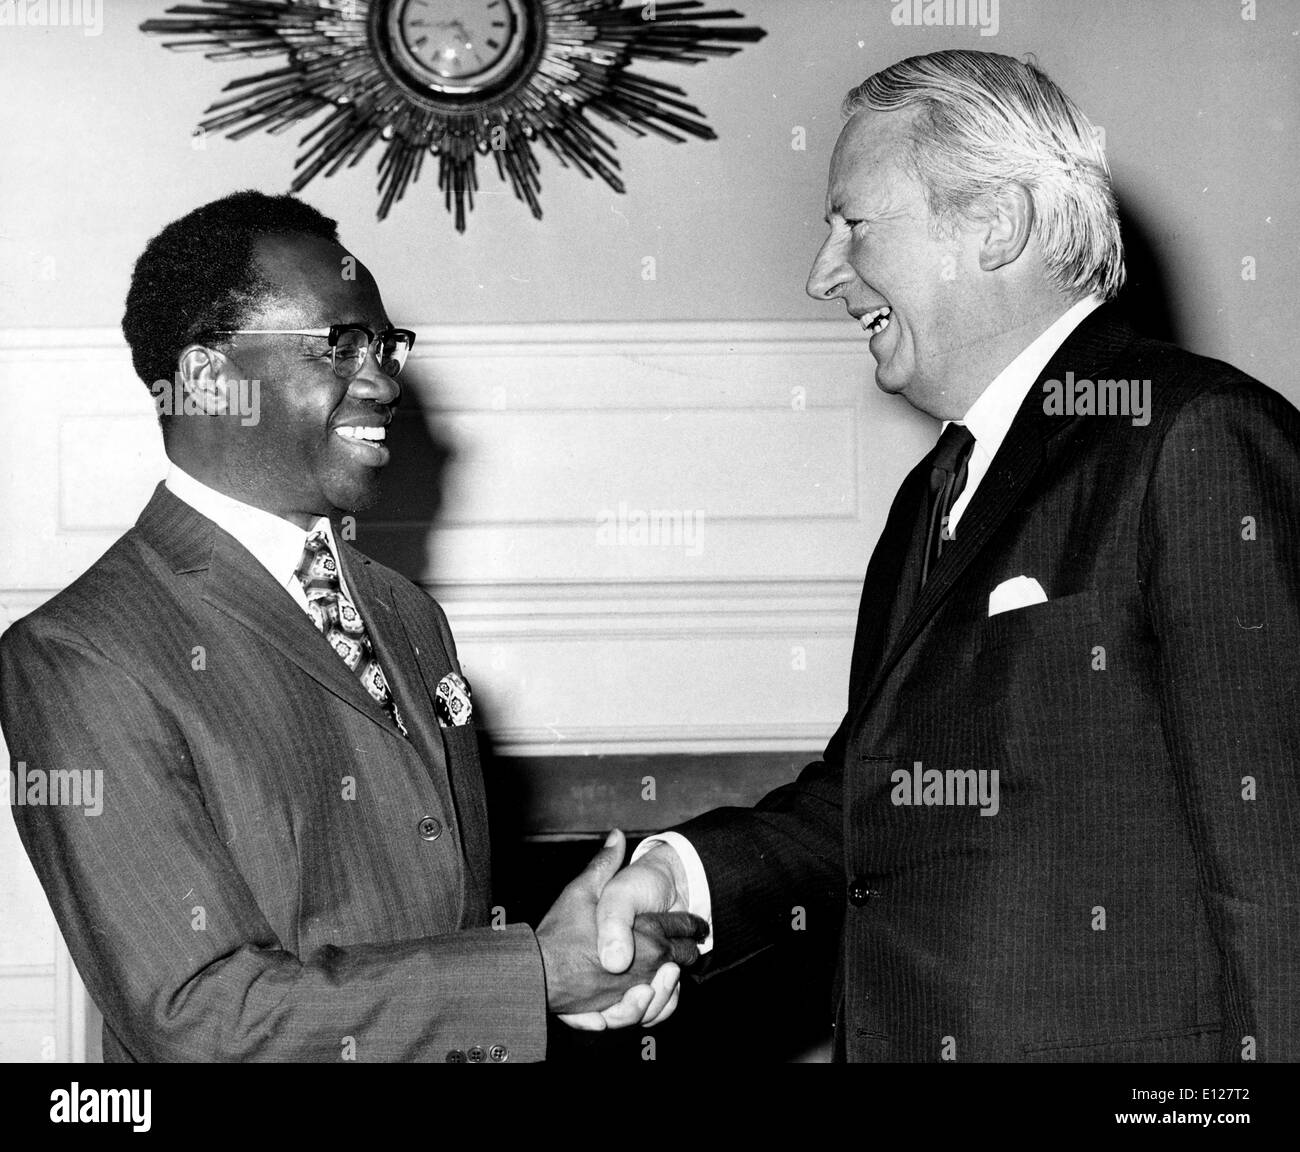 Apr 01, 2009 - London, England, United Kingdom - KOFI ABREFA BUSIA 11 July 1913 Ð 28 August 1978 was Prime Minister of Ghana f - Stock Image